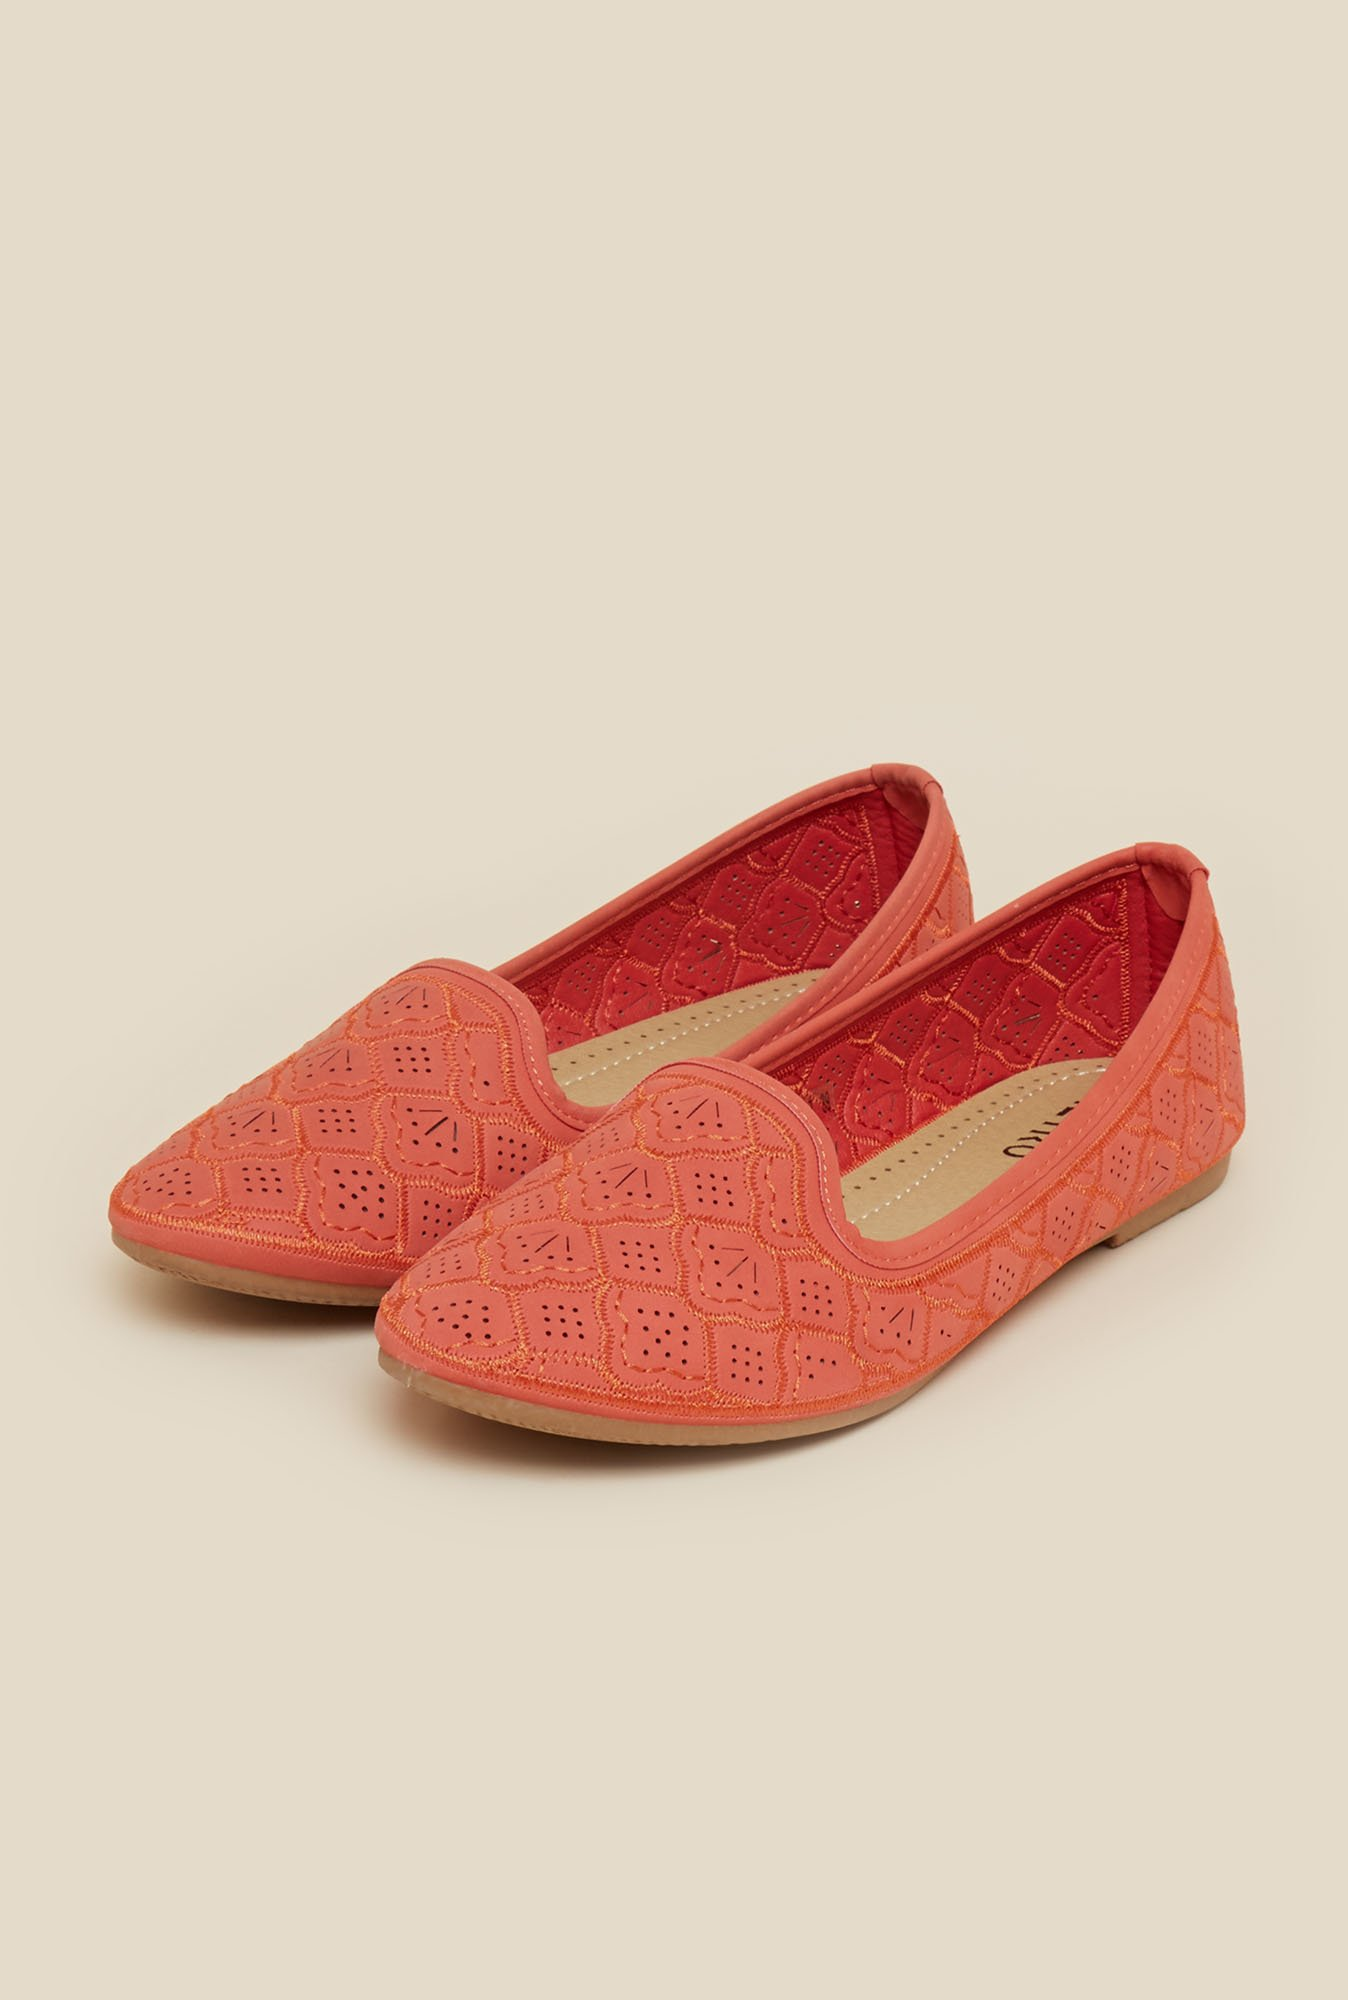 Metro Red Embroidered Ballerina Shoes